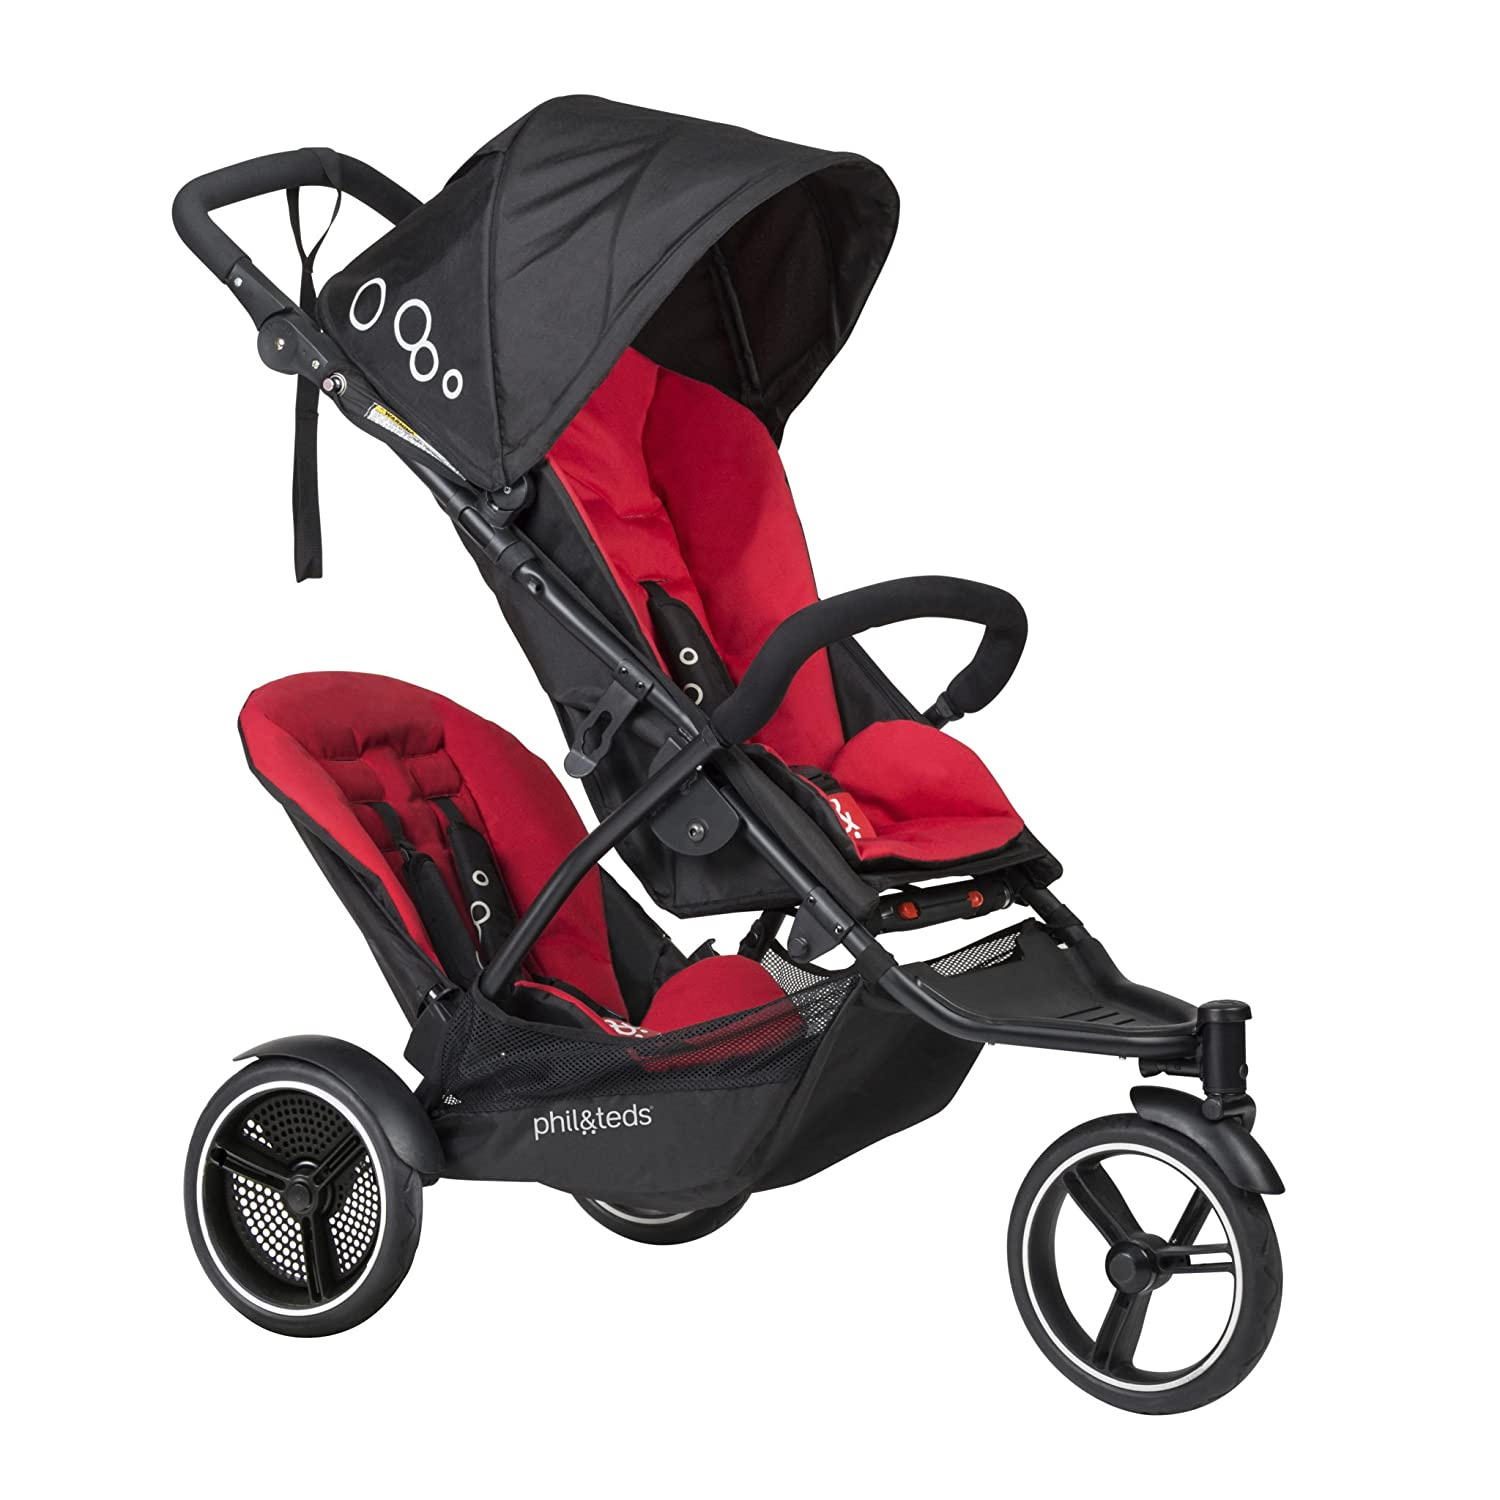 phil teds Dot Compact Inline City Stroller with Double Kit, Chili Compact Frame with Full Size Seat Newborn Ready Parent Facing Seat Included Compact, One Hand Fold Puncture Proof Tires